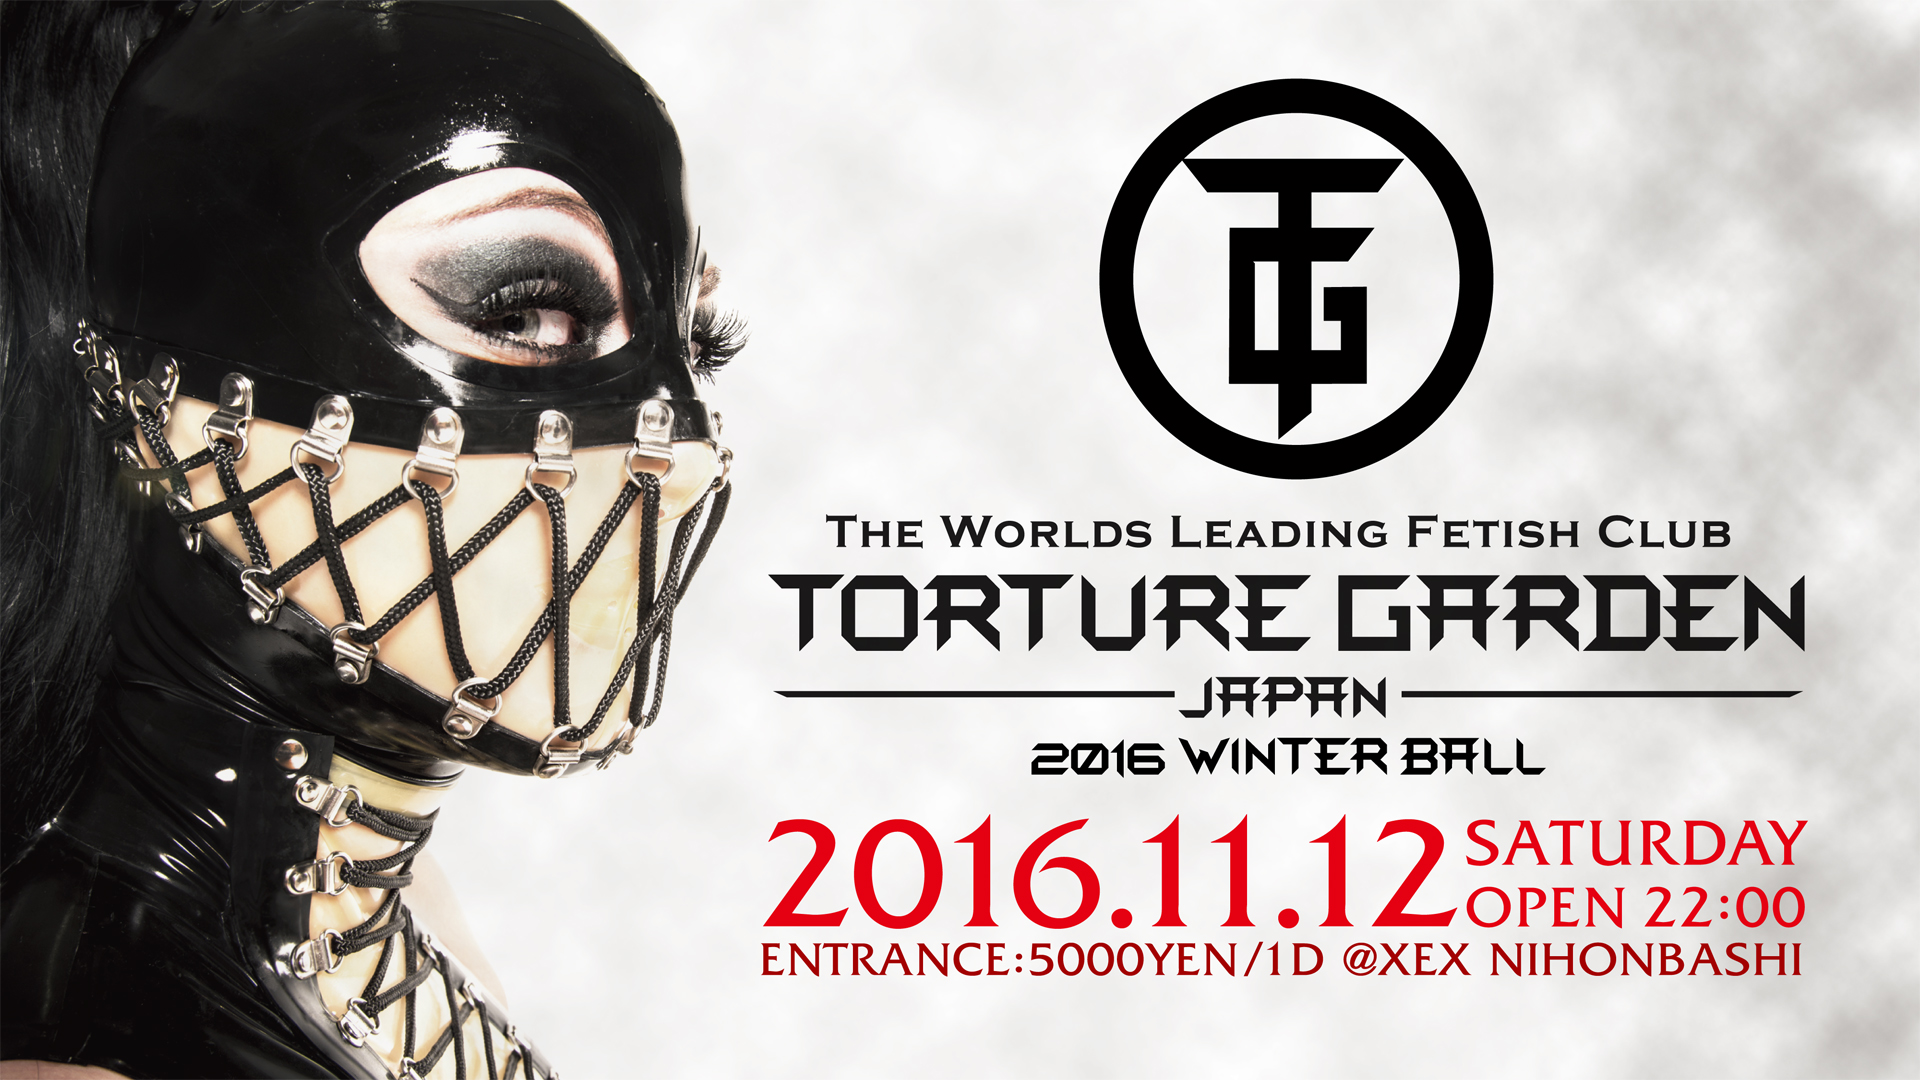 TORTURE GARDEN JAPAN 2016 WINTER BALL